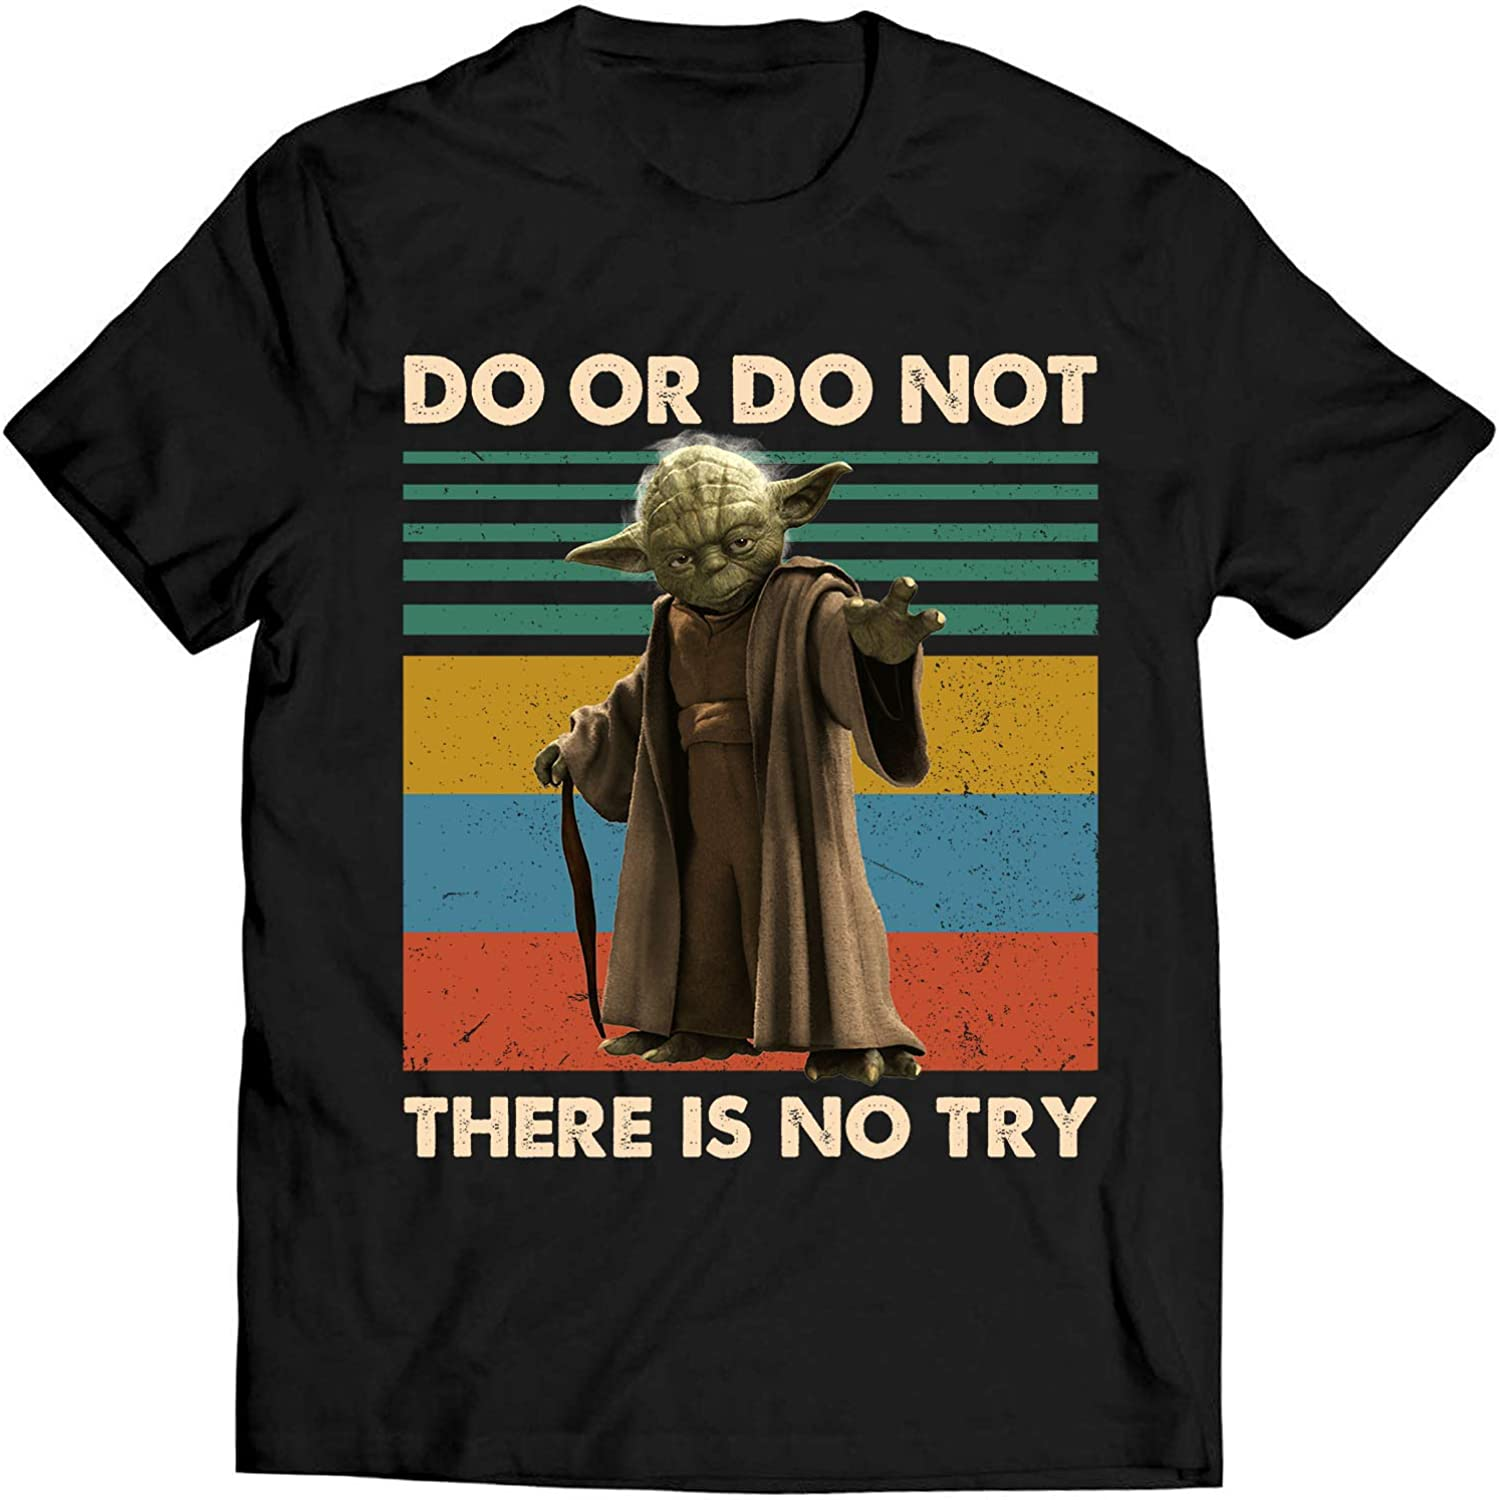 B07XYC12LV Yoda Lovers Do Or Do Not There is No Try Vintage T Shirt Star Lovers Wars Fan Movie T Shirt 71fNsFns6nL